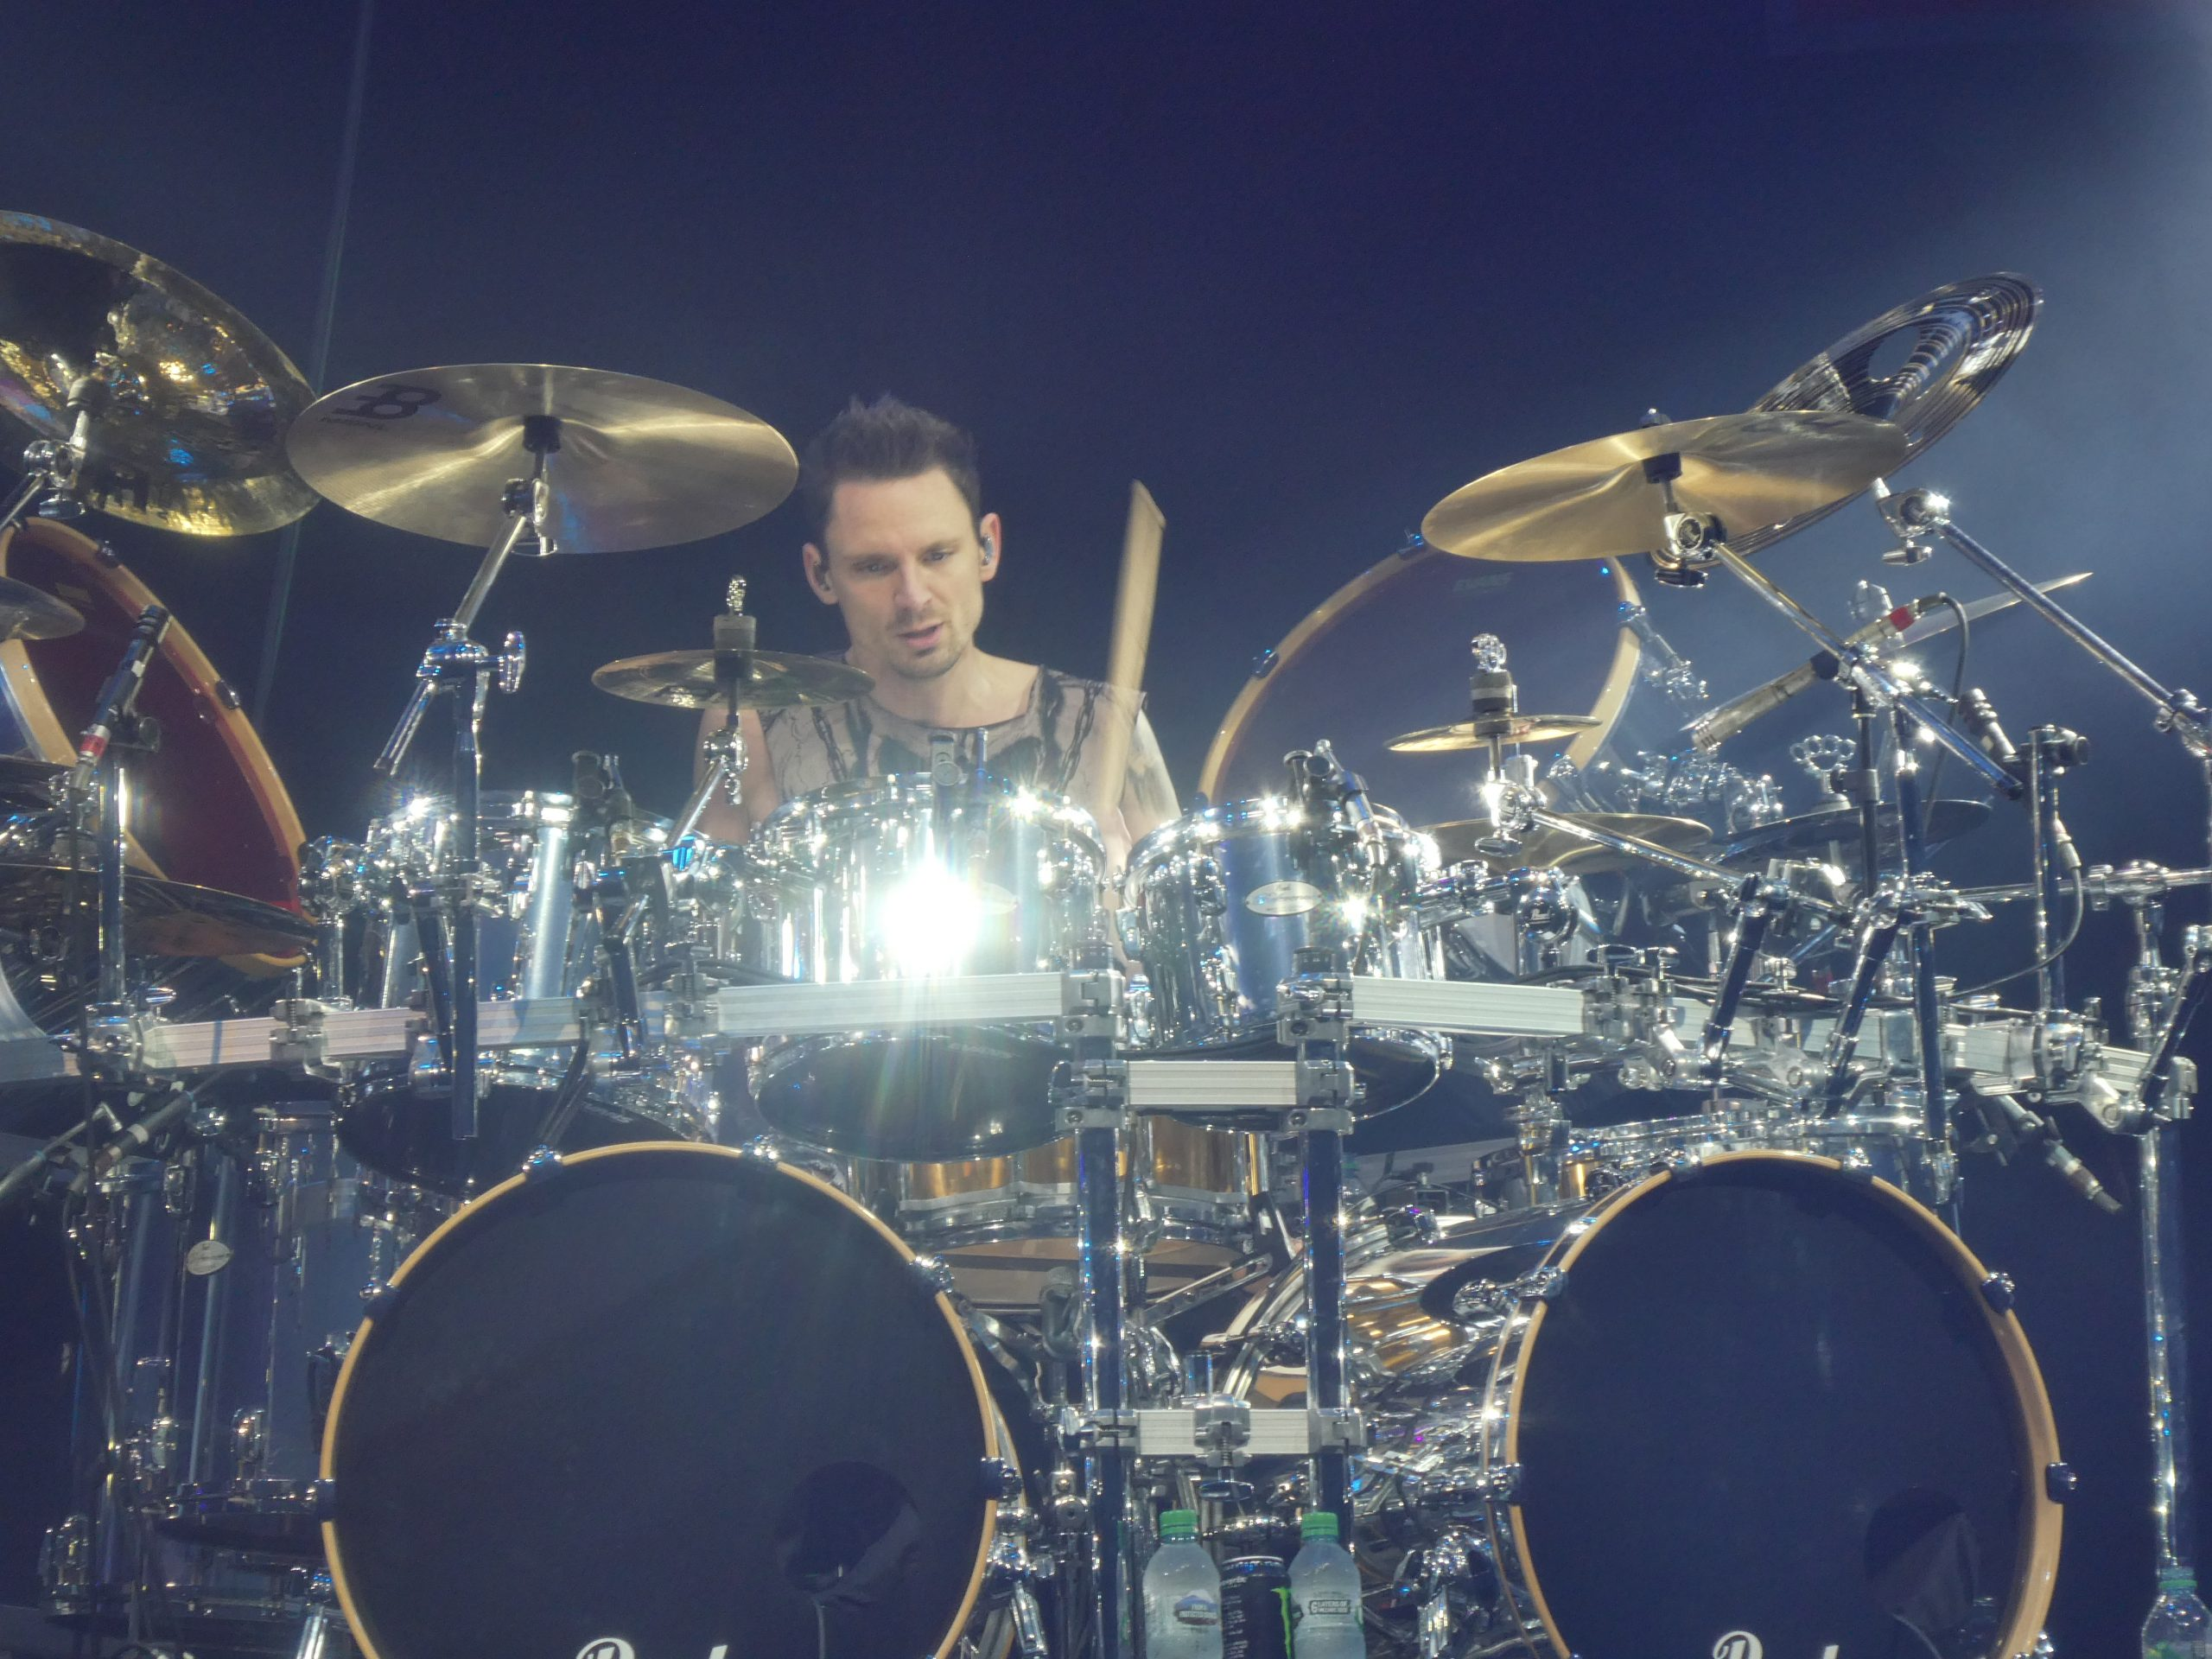 Charlie Engen of 5FDP onstage during the UK leg of the Megadeathpunch tour in 2020